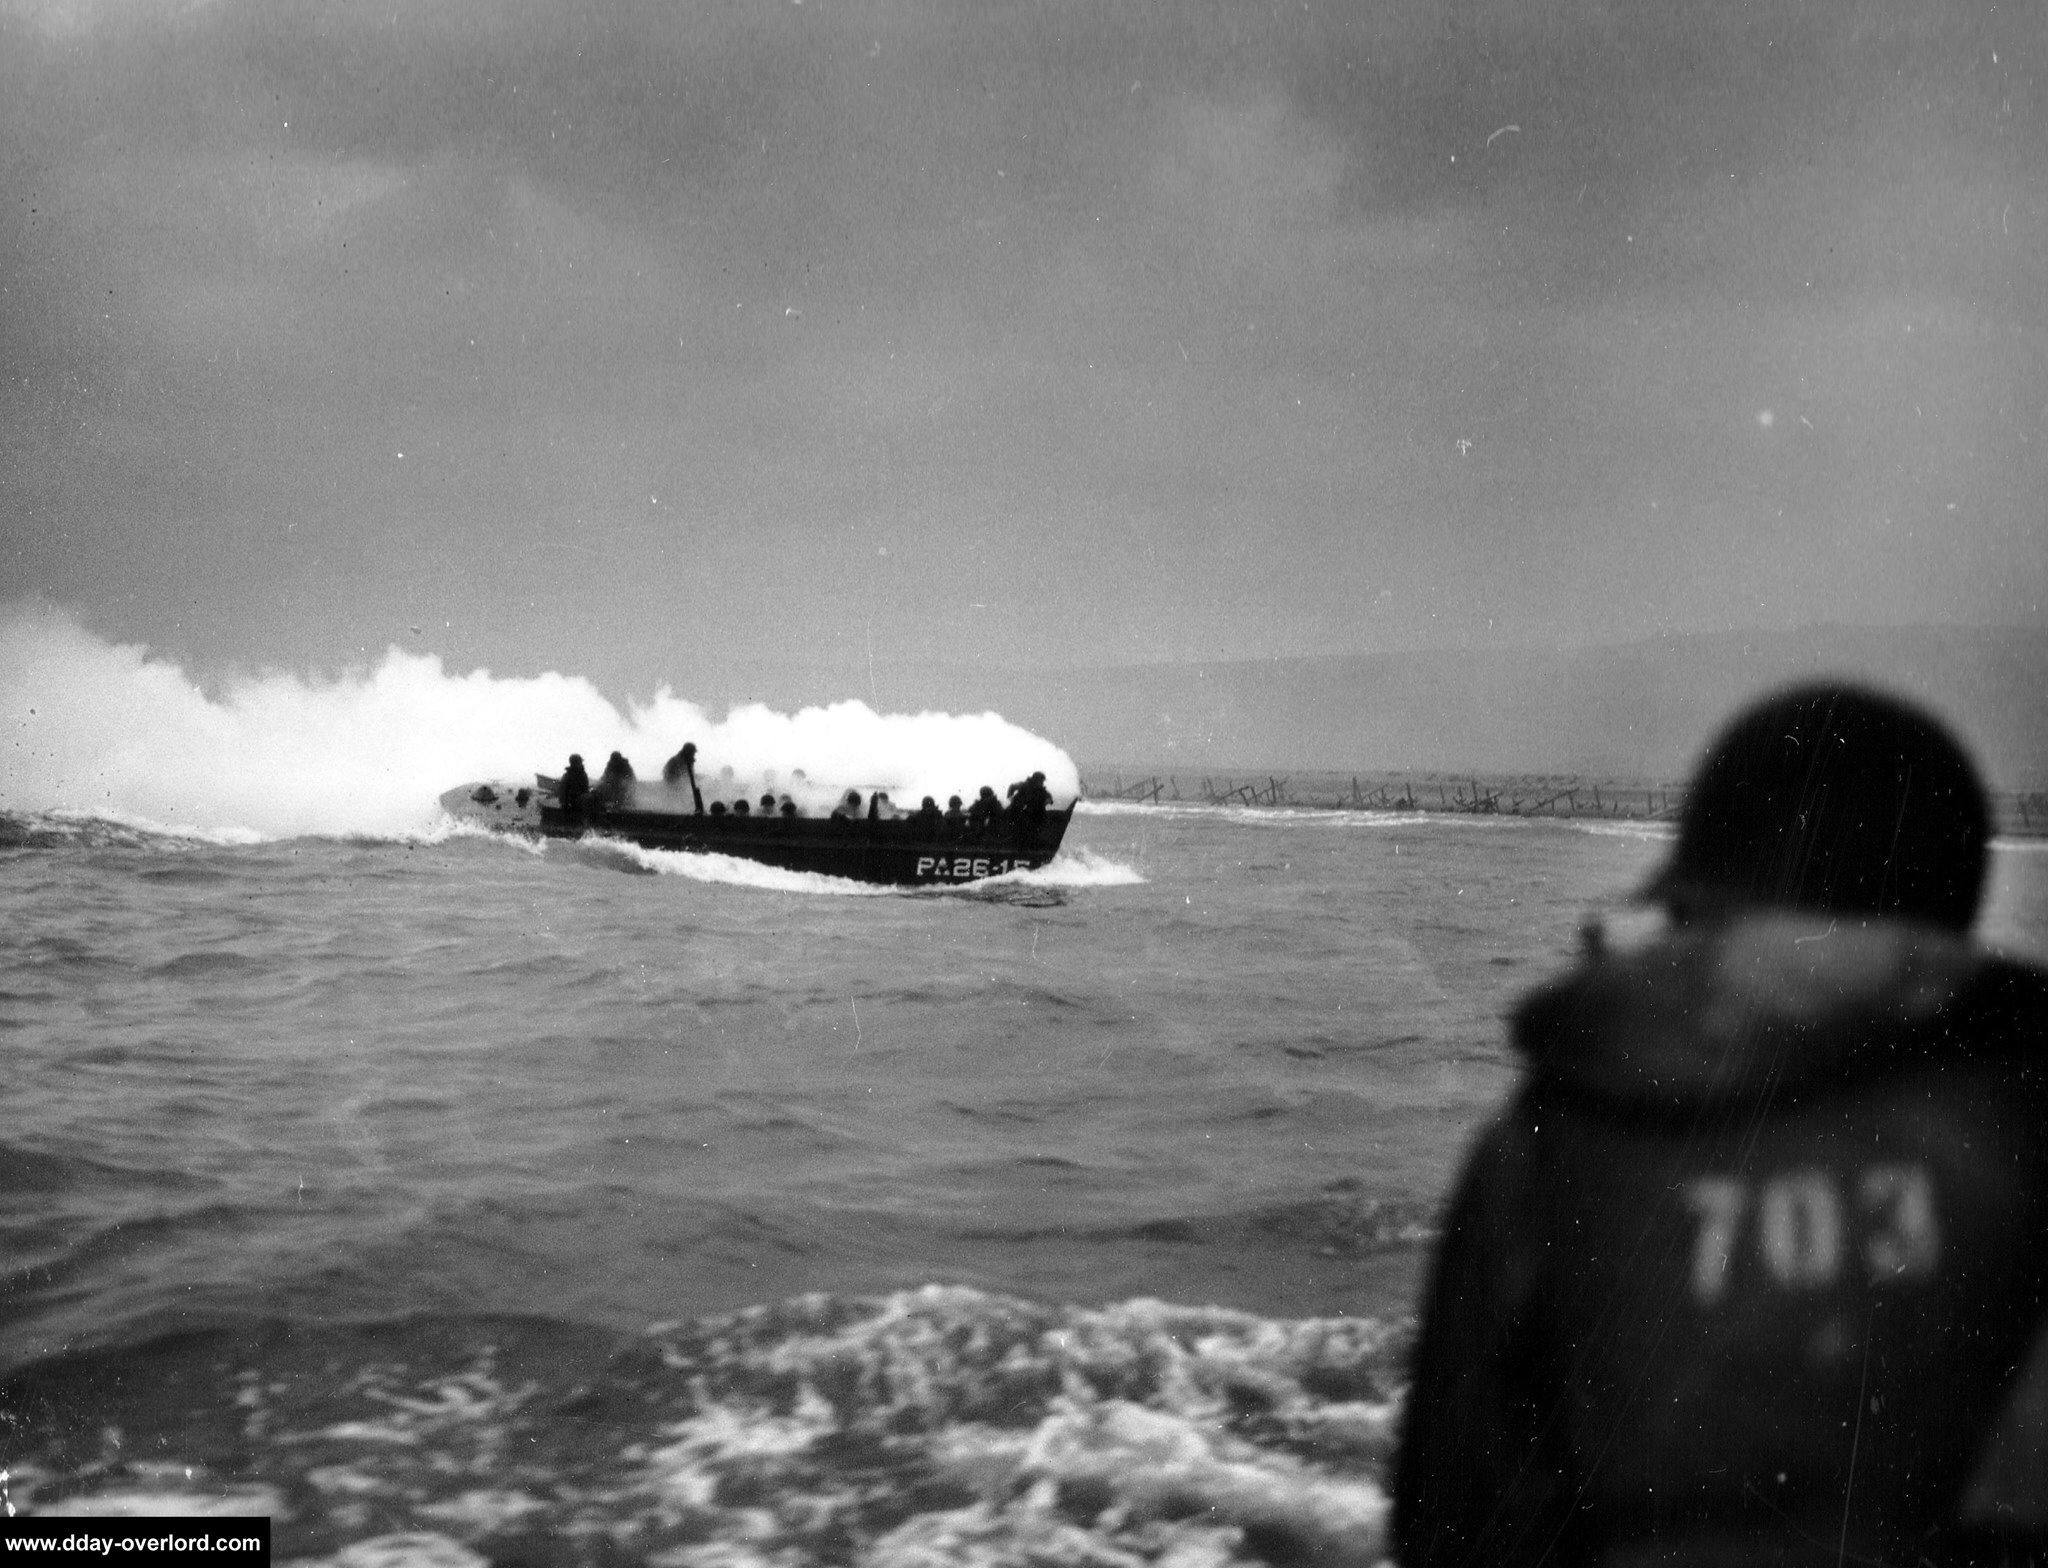 June 1944, Omaha Beach  Landing of the second wave, 116th